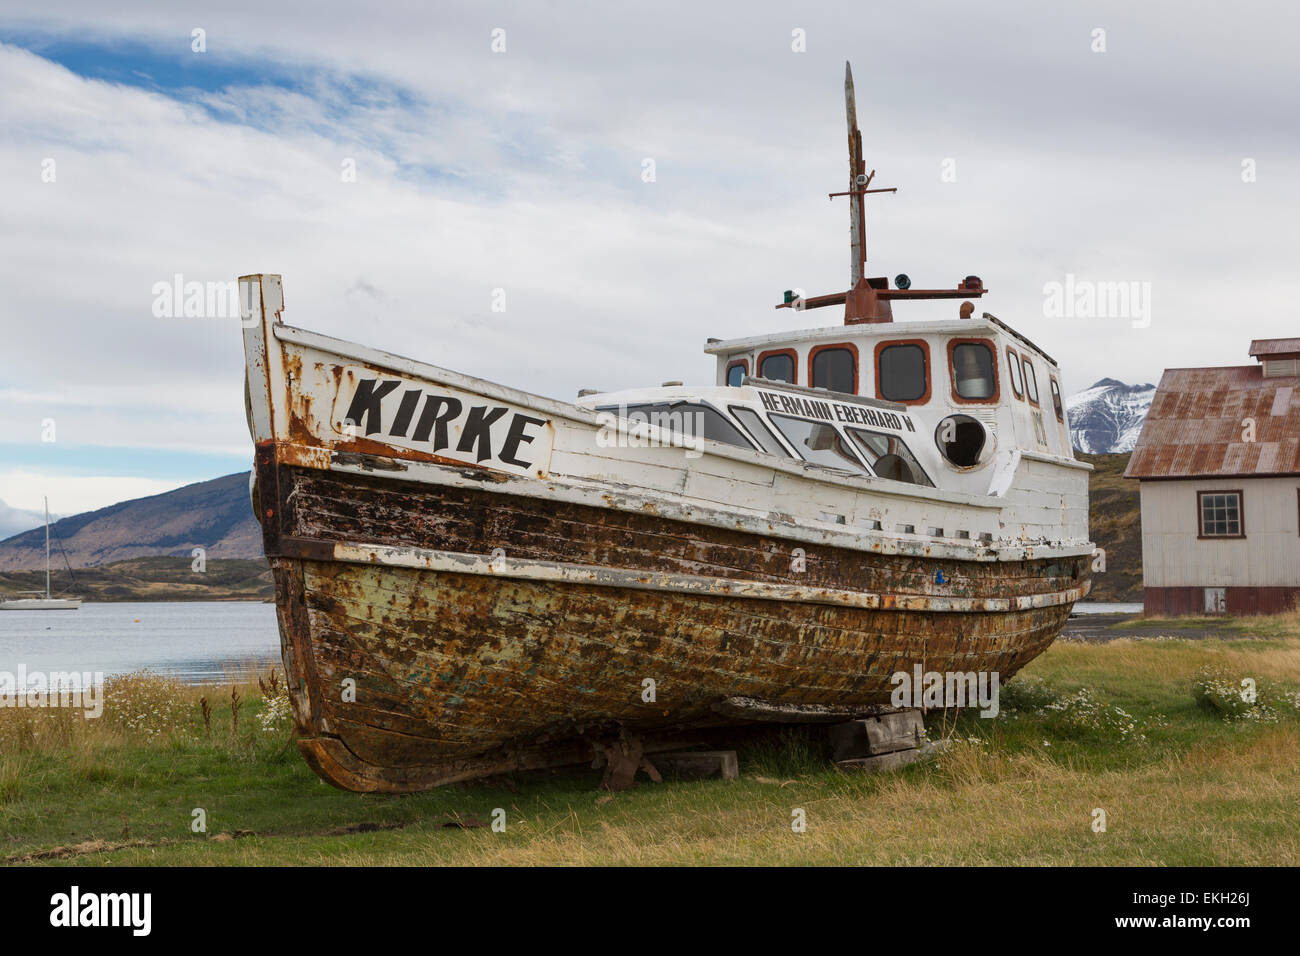 Old wooden boat hauled up out of the water, Puerto Consuelo, Chile Stock Photo